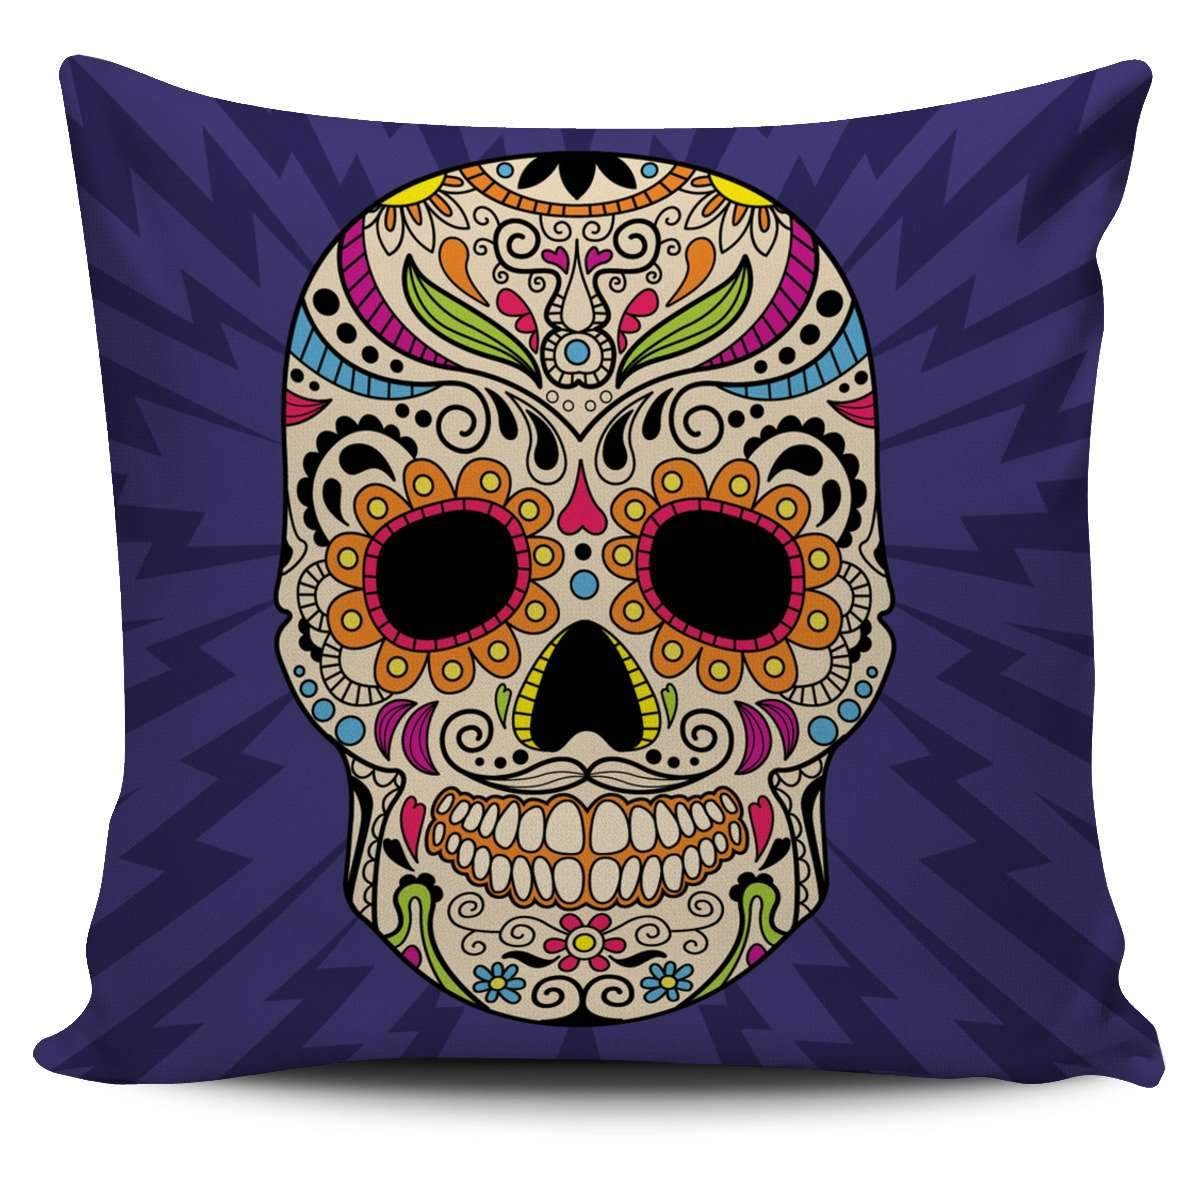 Blue Radiant Skull Pillow Cover Umisfashion Store